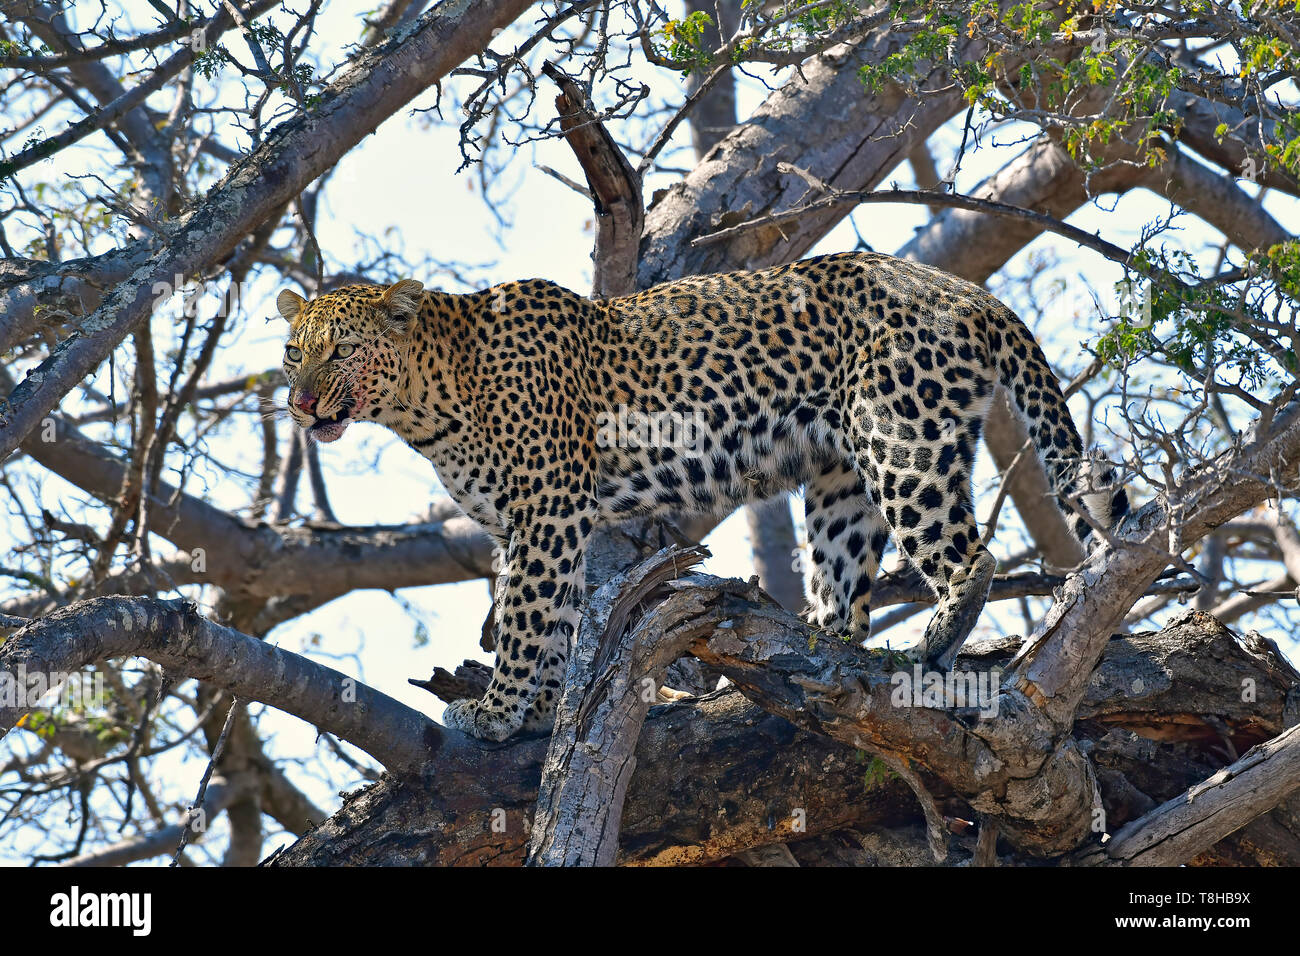 Bloodied Leopard Panthera Pardus protecting kill in Tree Kruger National Park, South Africa - Stock Image